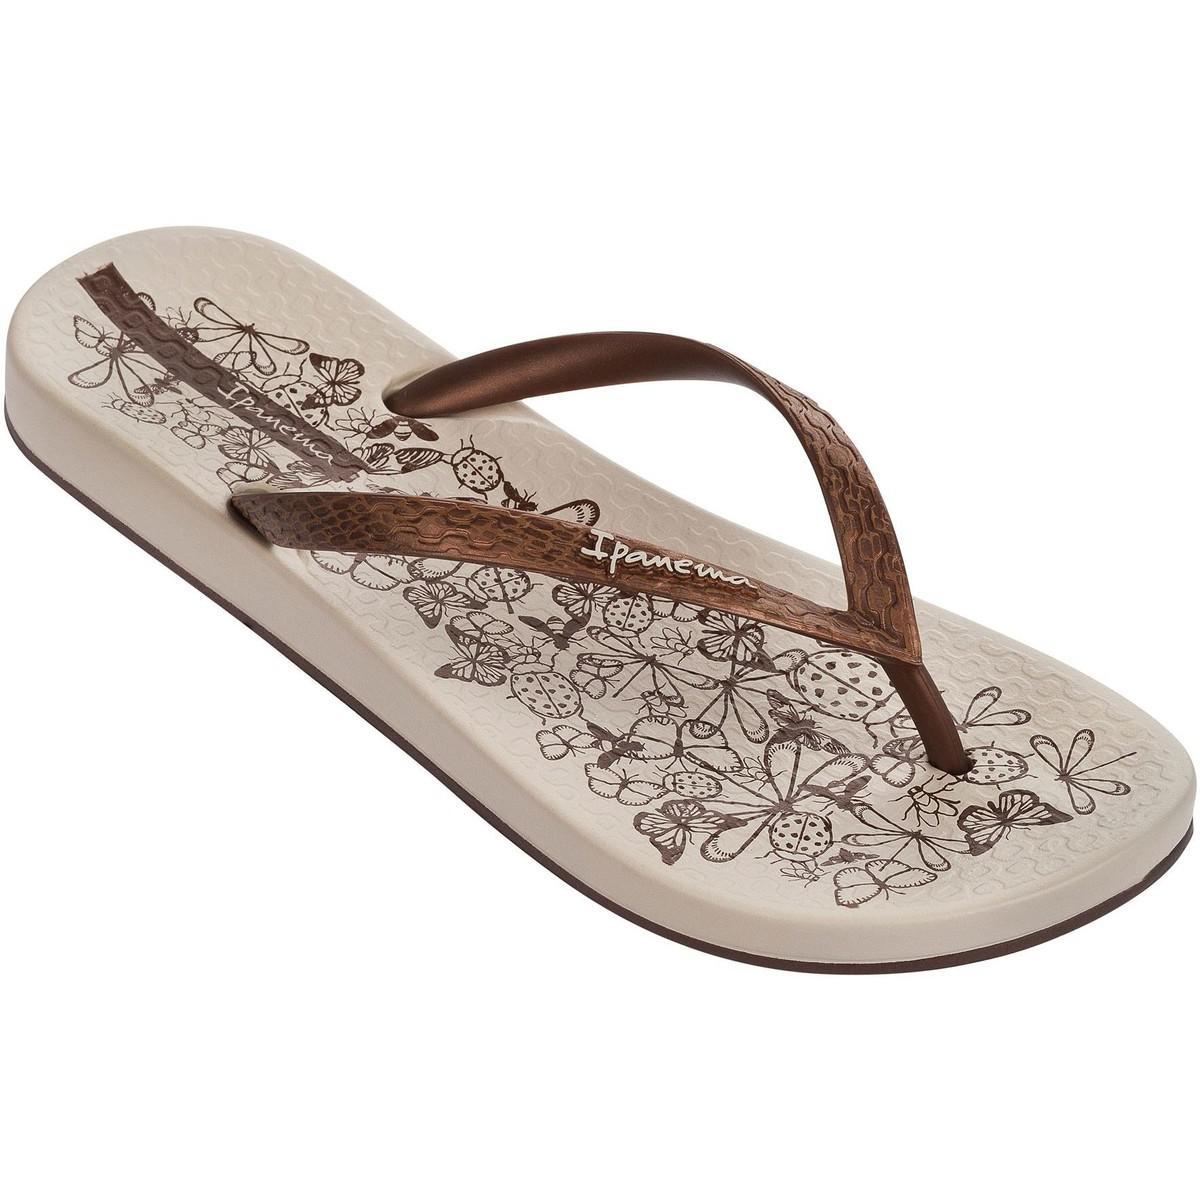 70cadb20b Ipanema Nature Flip Flops In Beige Bronze Flowers Print 81926 ...